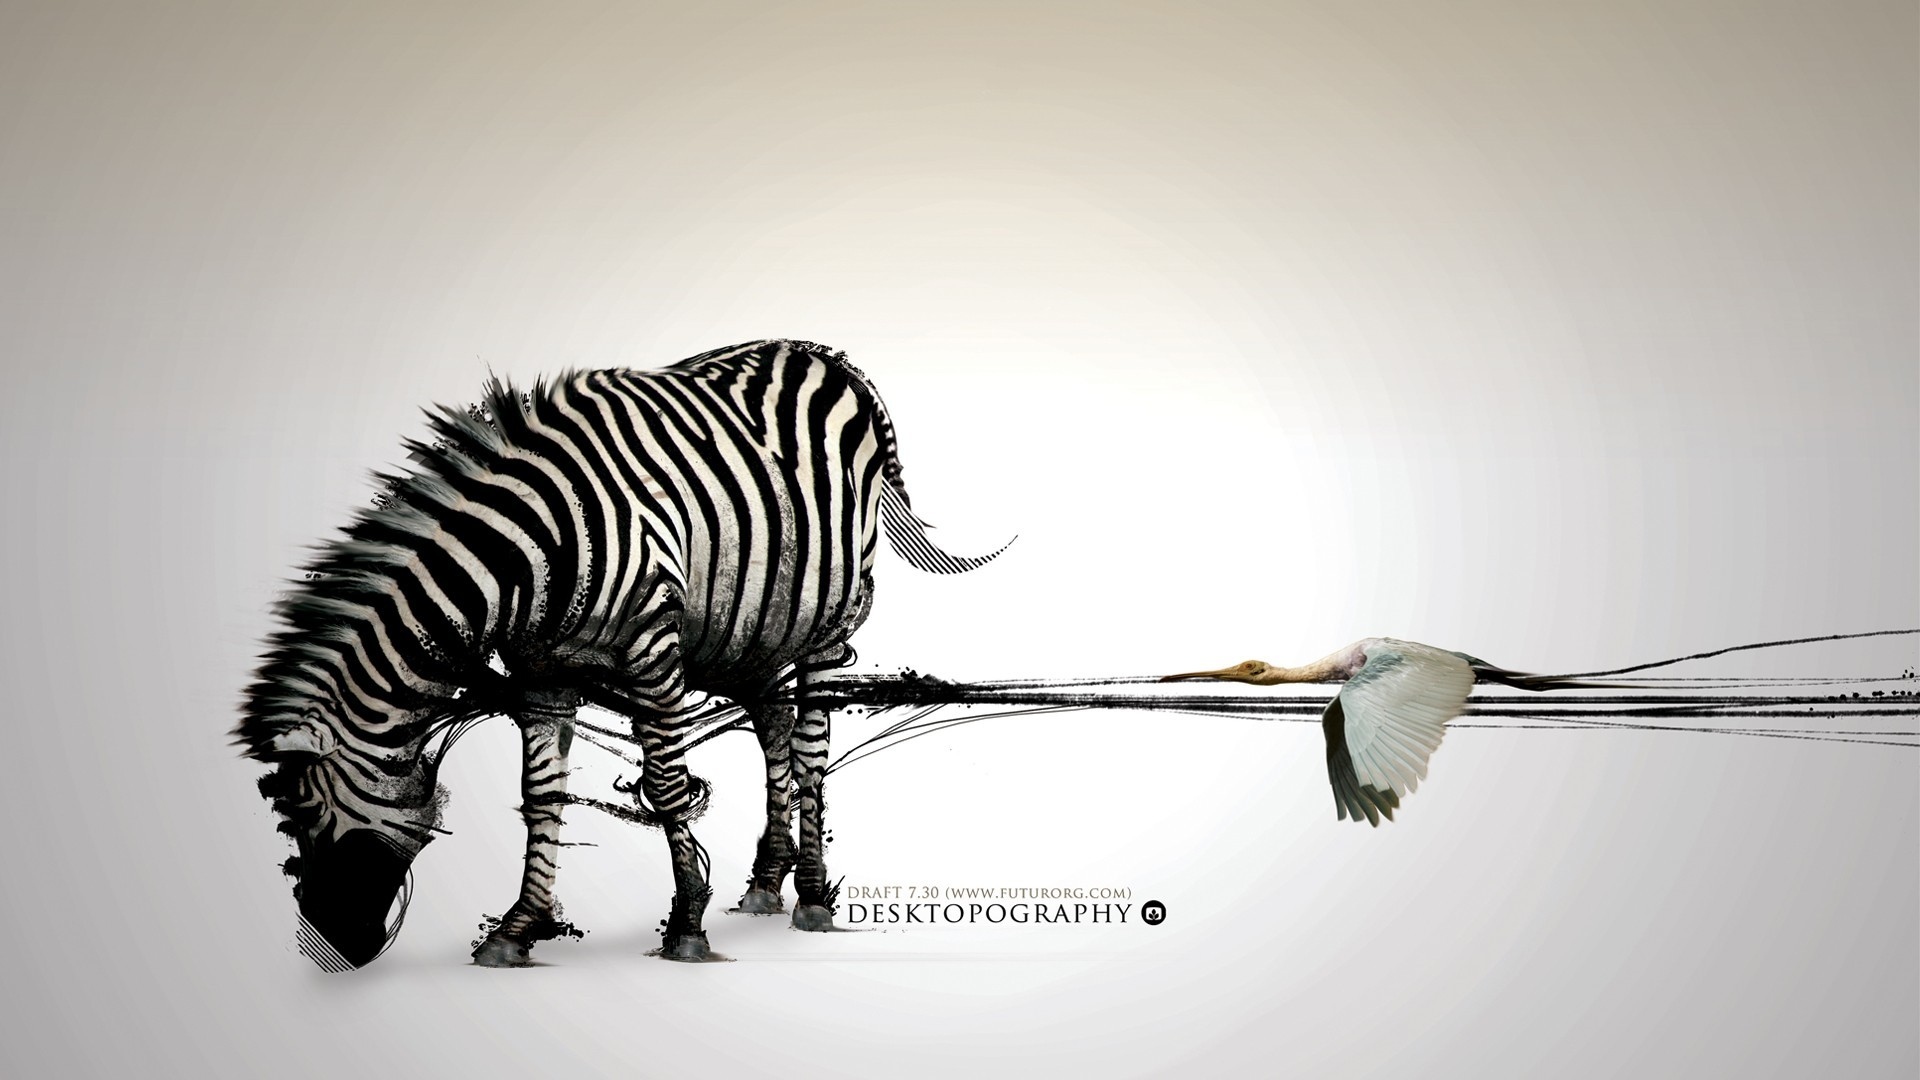 abstract zebras Desktopography HD Wallpaper